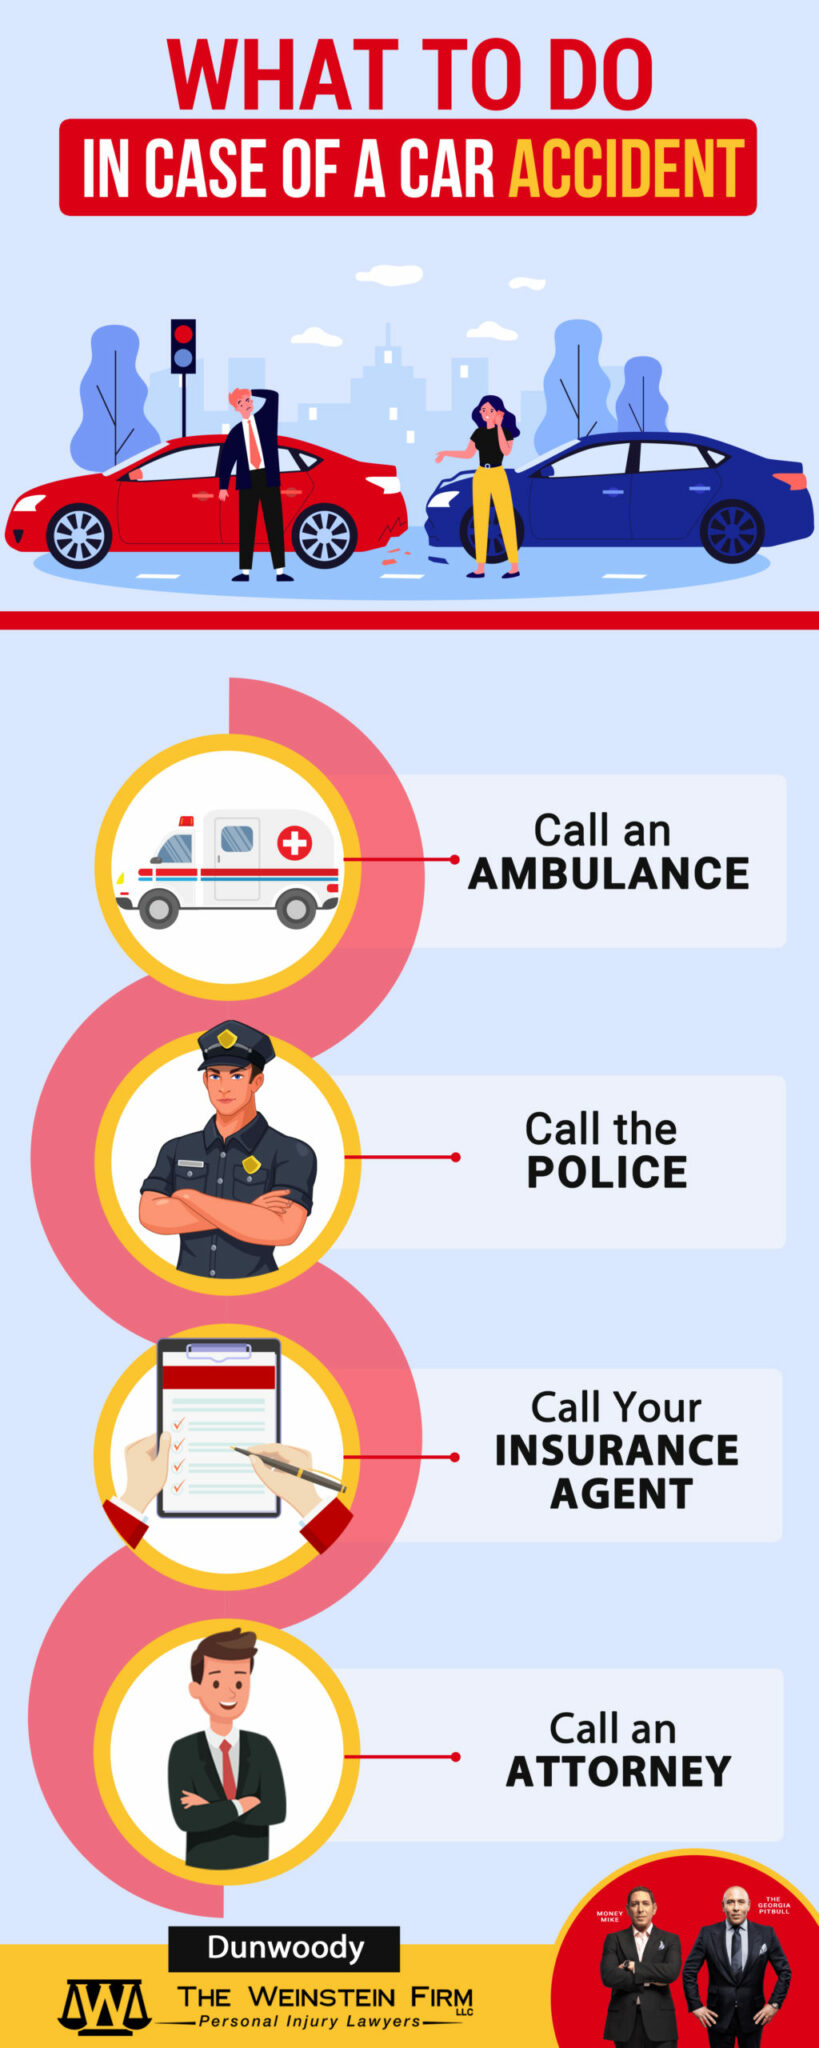 Dunwoody Car Accident Infographic